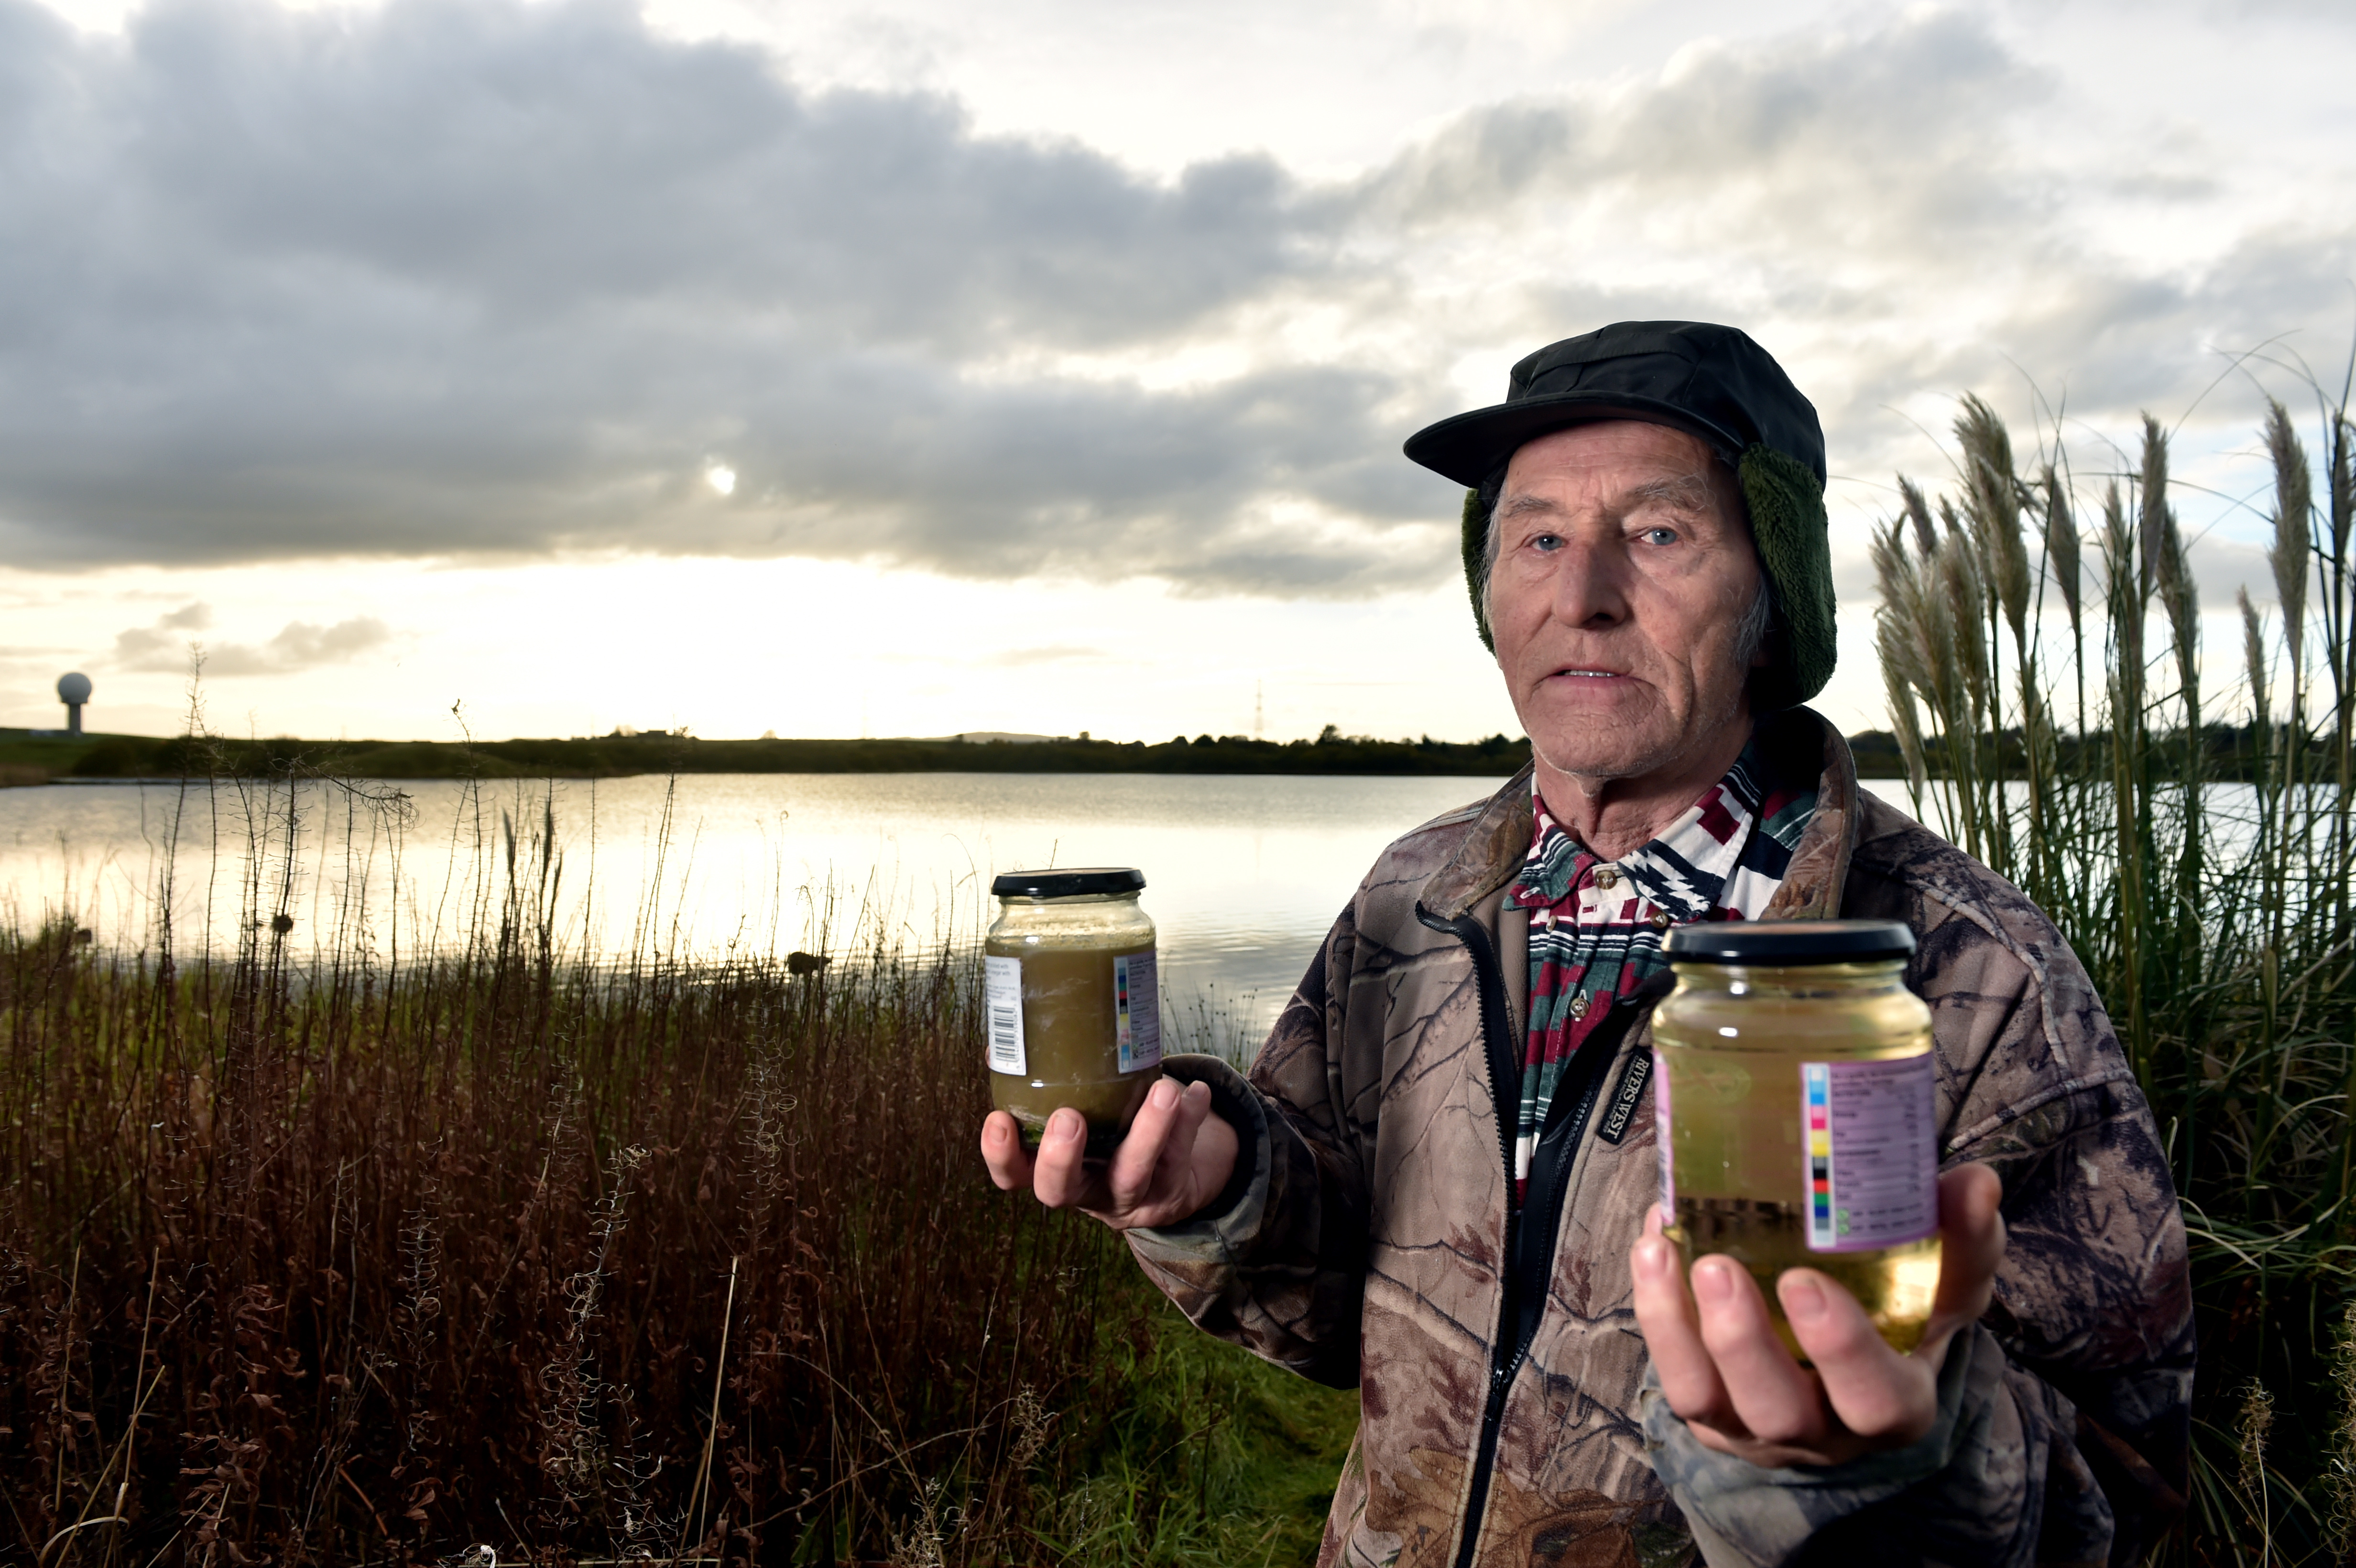 Ian Muir, a fisherman at the loch who claims the AWPR has destroyed the fishing at the loch.